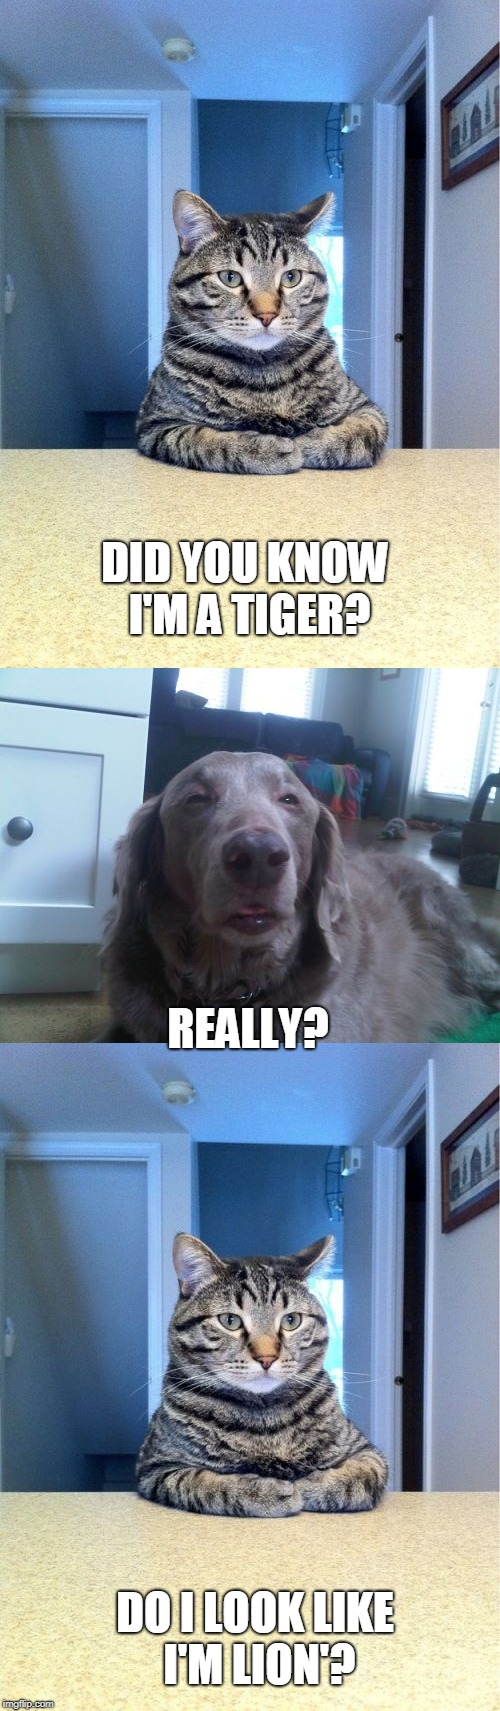 DID YOU KNOW I'M A TIGER? REALLY? DO I LOOK LIKE I'M LION'? | image tagged in memes,take a seat cat,high dog,puns | made w/ Imgflip meme maker